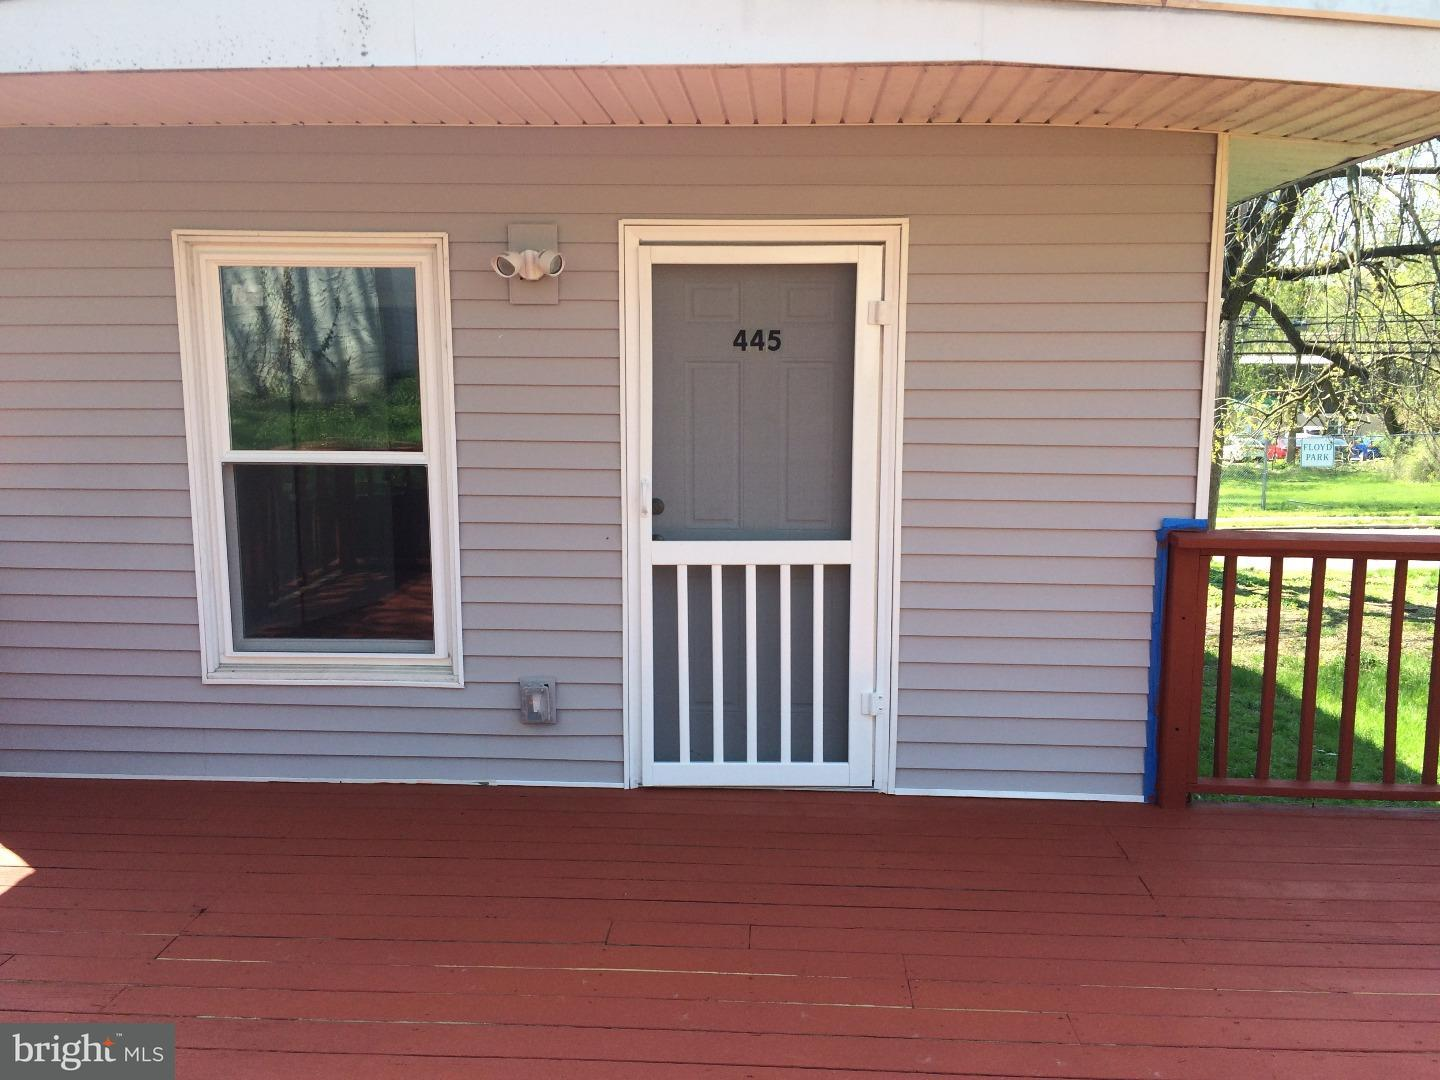 445 S 5TH ST, COLWYN - Listed at $1,495, COLWYN